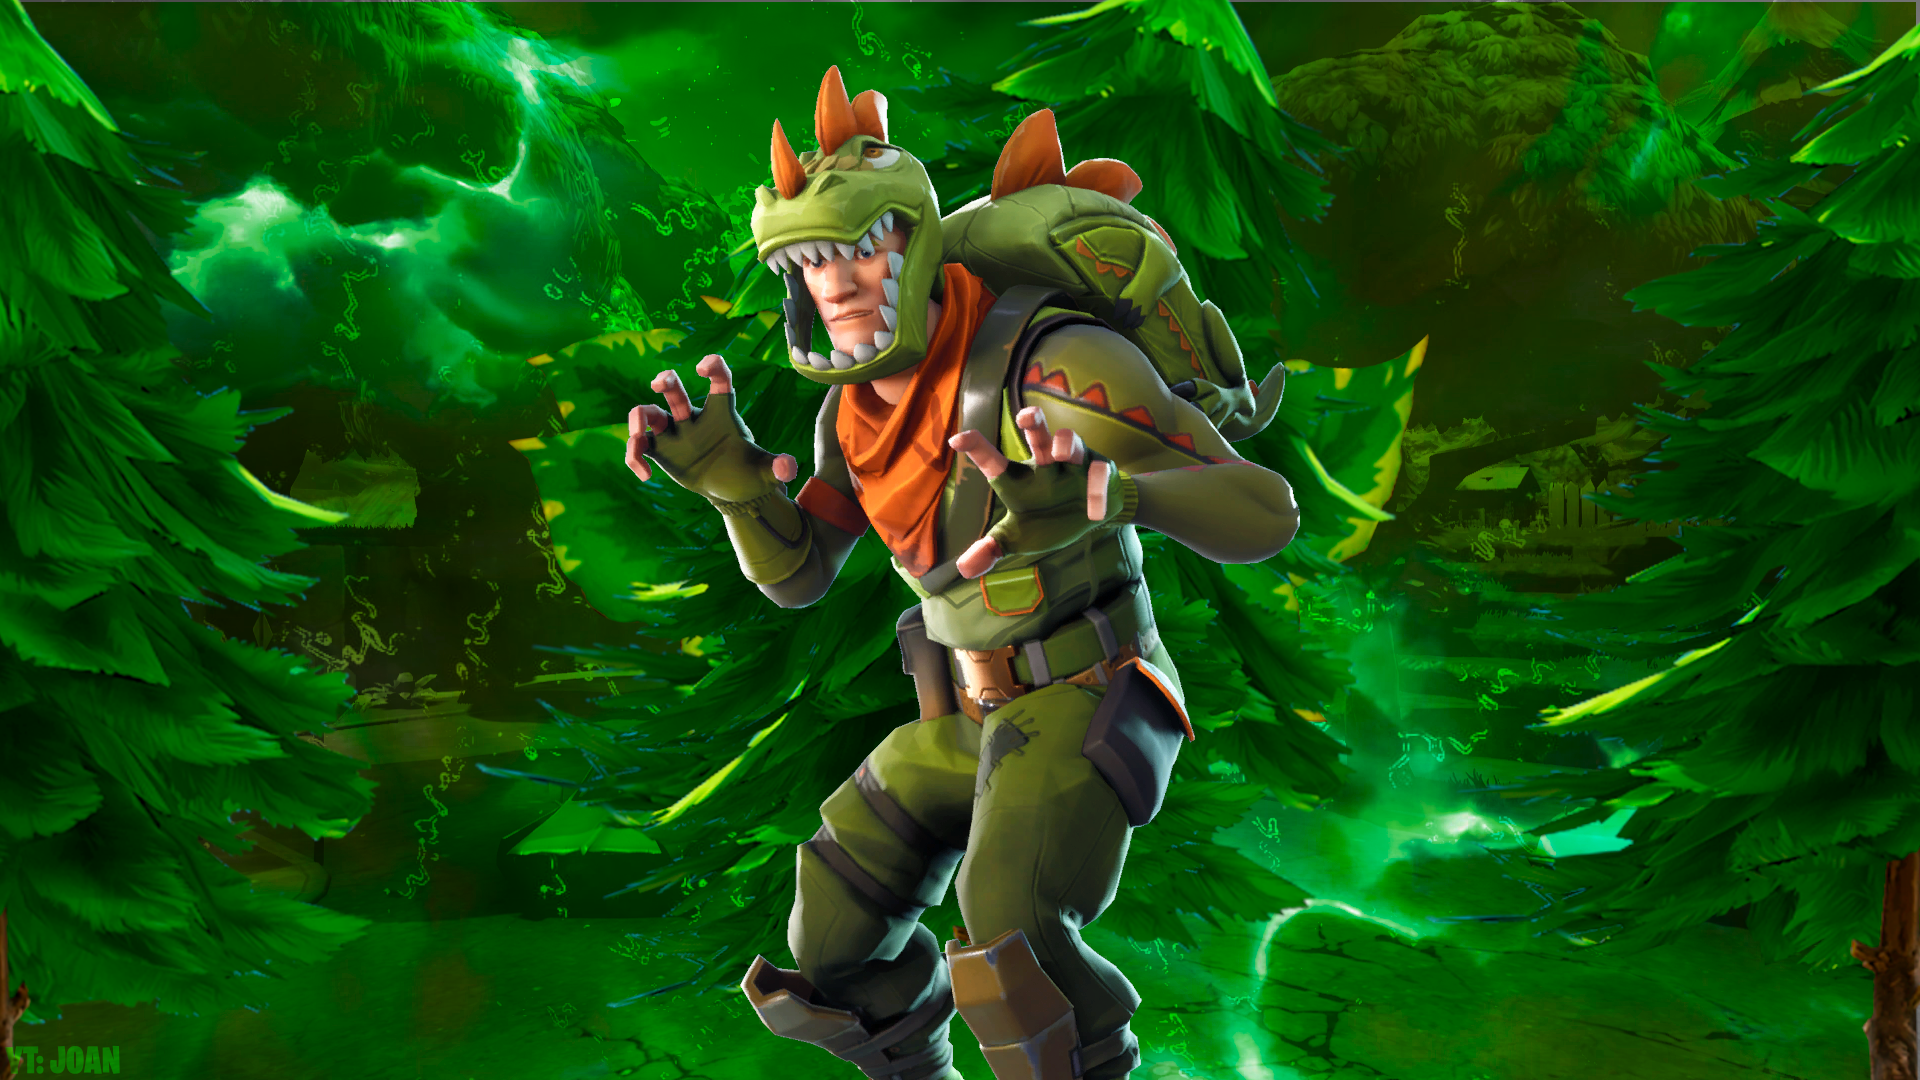 Fortnite Wallpaper Green